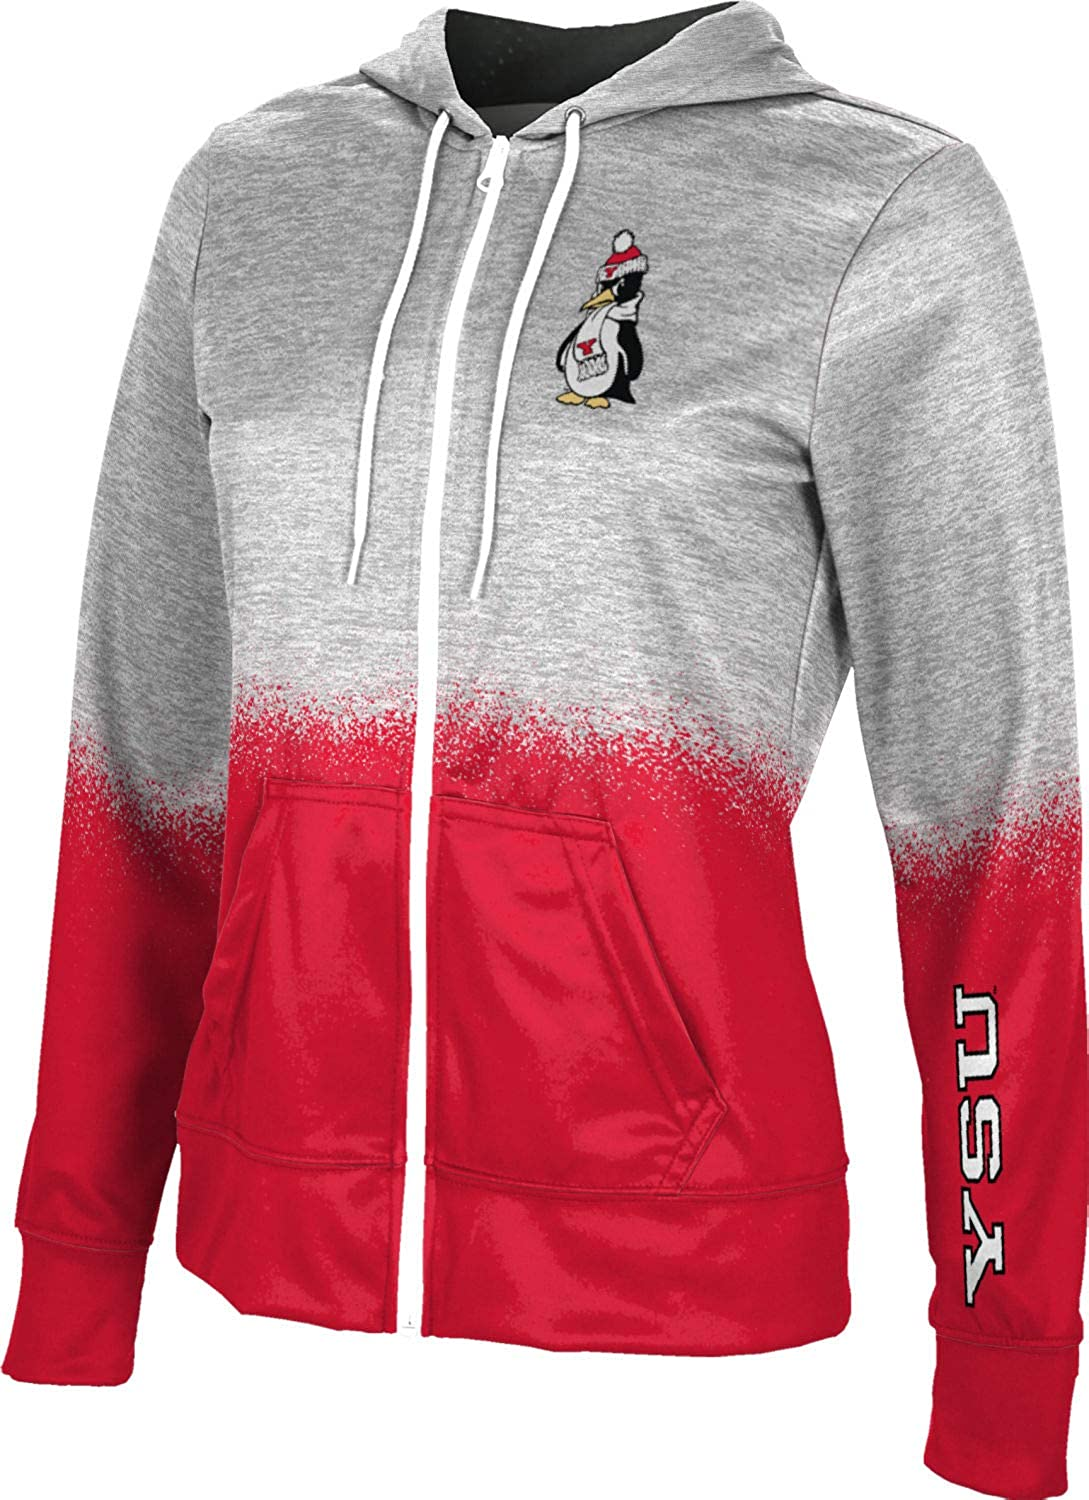 ProSphere Youngstown Inexpensive Excellence State University Scho Hoodie Girls' Zipper